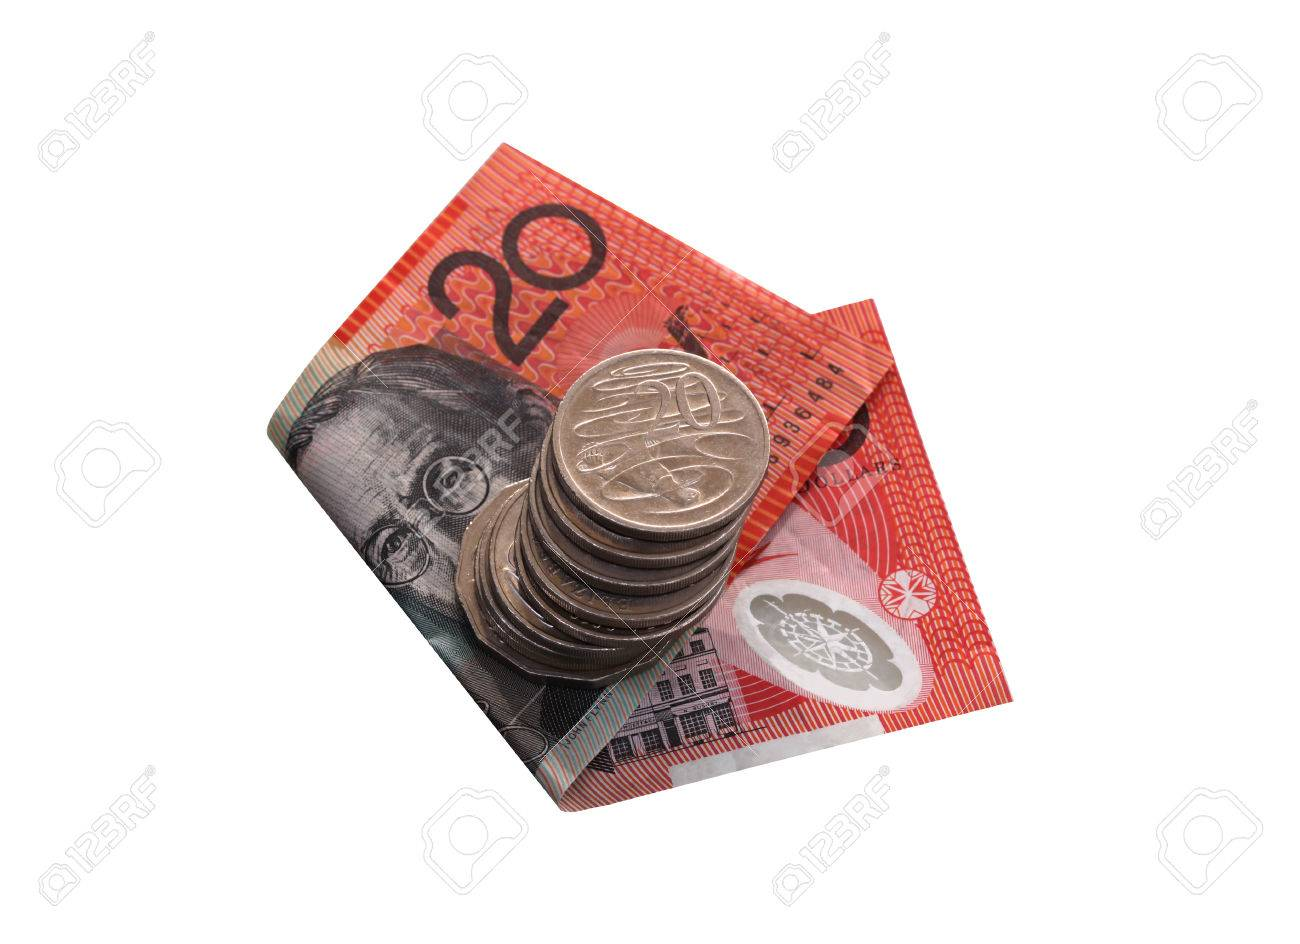 Australian twenty dollar note with a pile of silver coins  Note focus on top twenty cent coin Stock Photo - 24261040